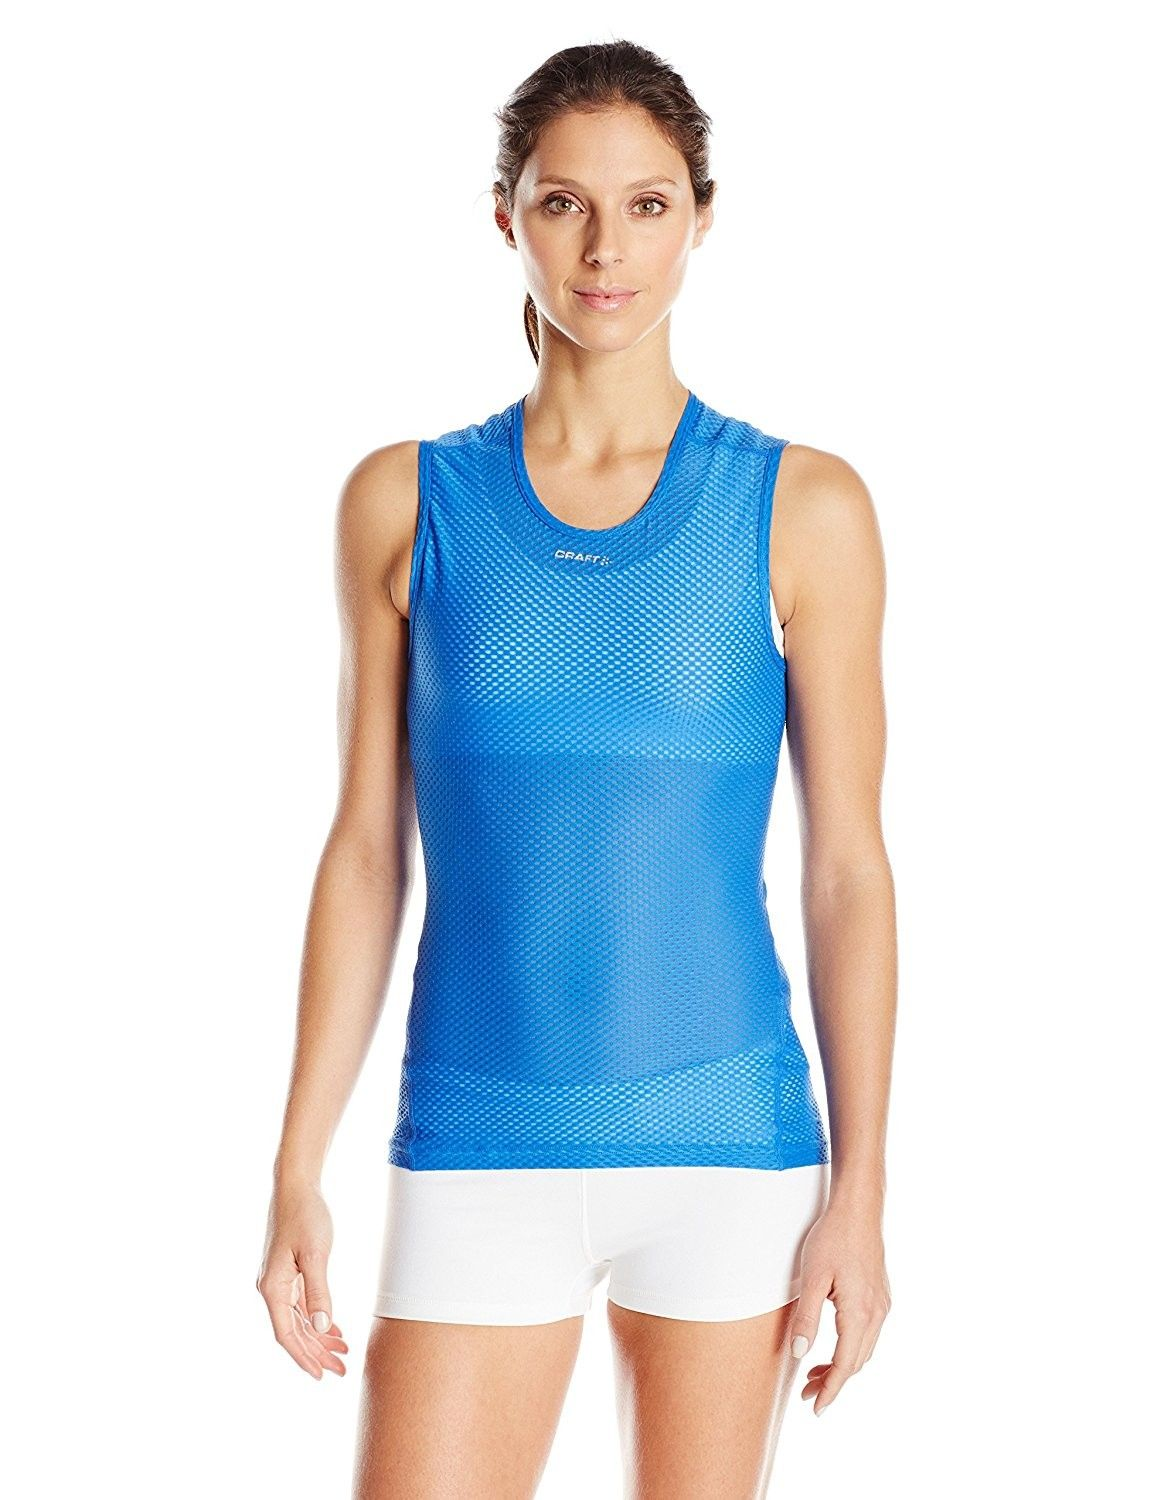 cf1b34bc5f7a1 Craft Women s Cool Mesh Superlight Singlet Base Layer Sleeveless Shirt -  Tempo Shock - CS129BGWQQ1